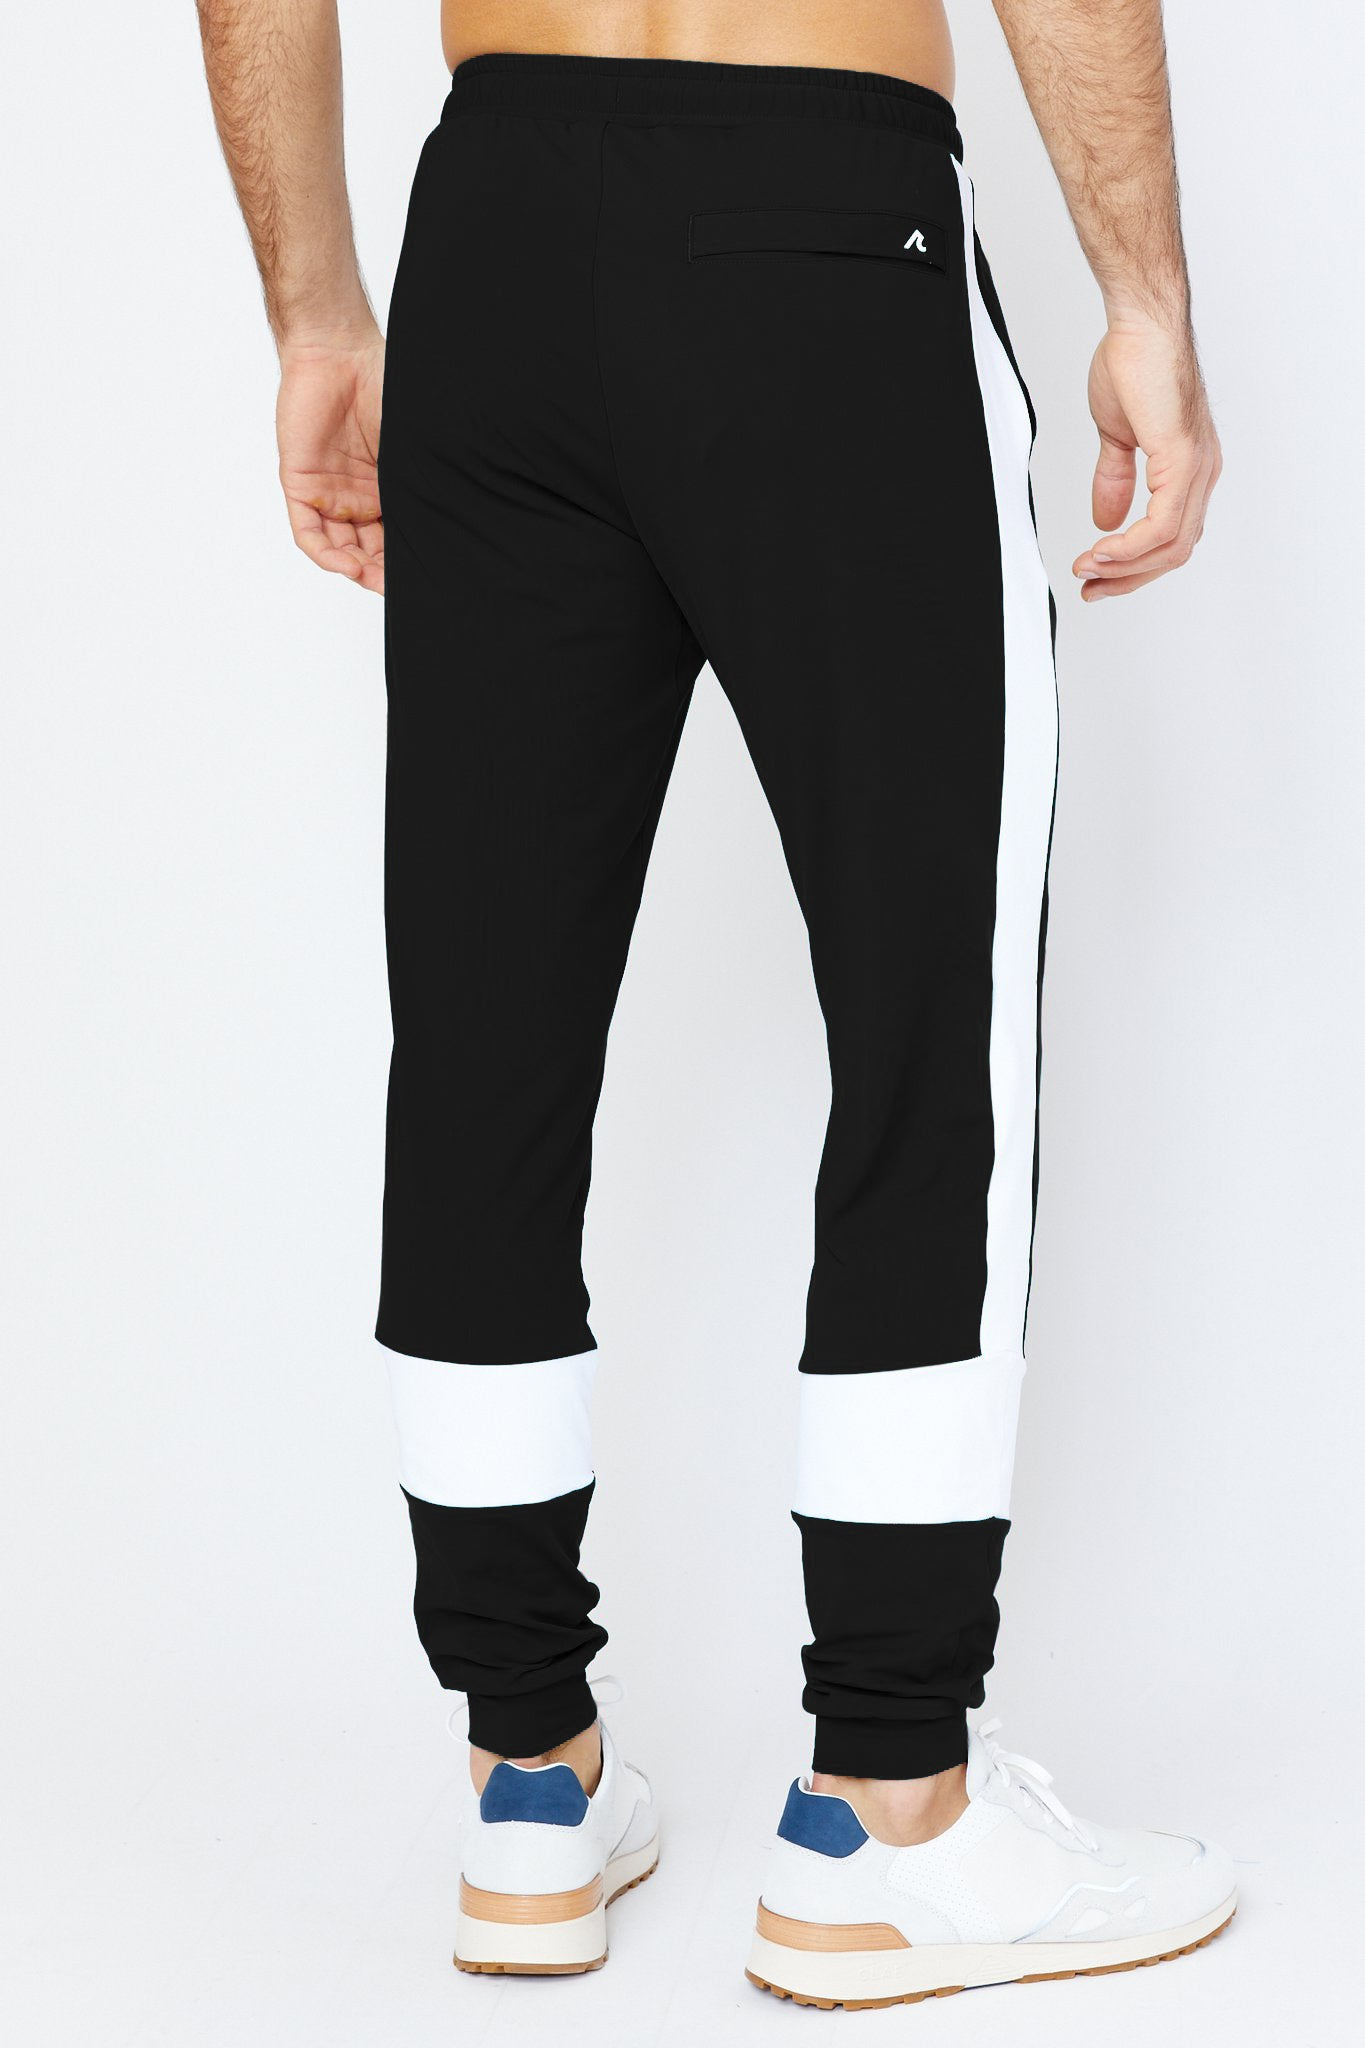 Maiden Jogger in Black/White